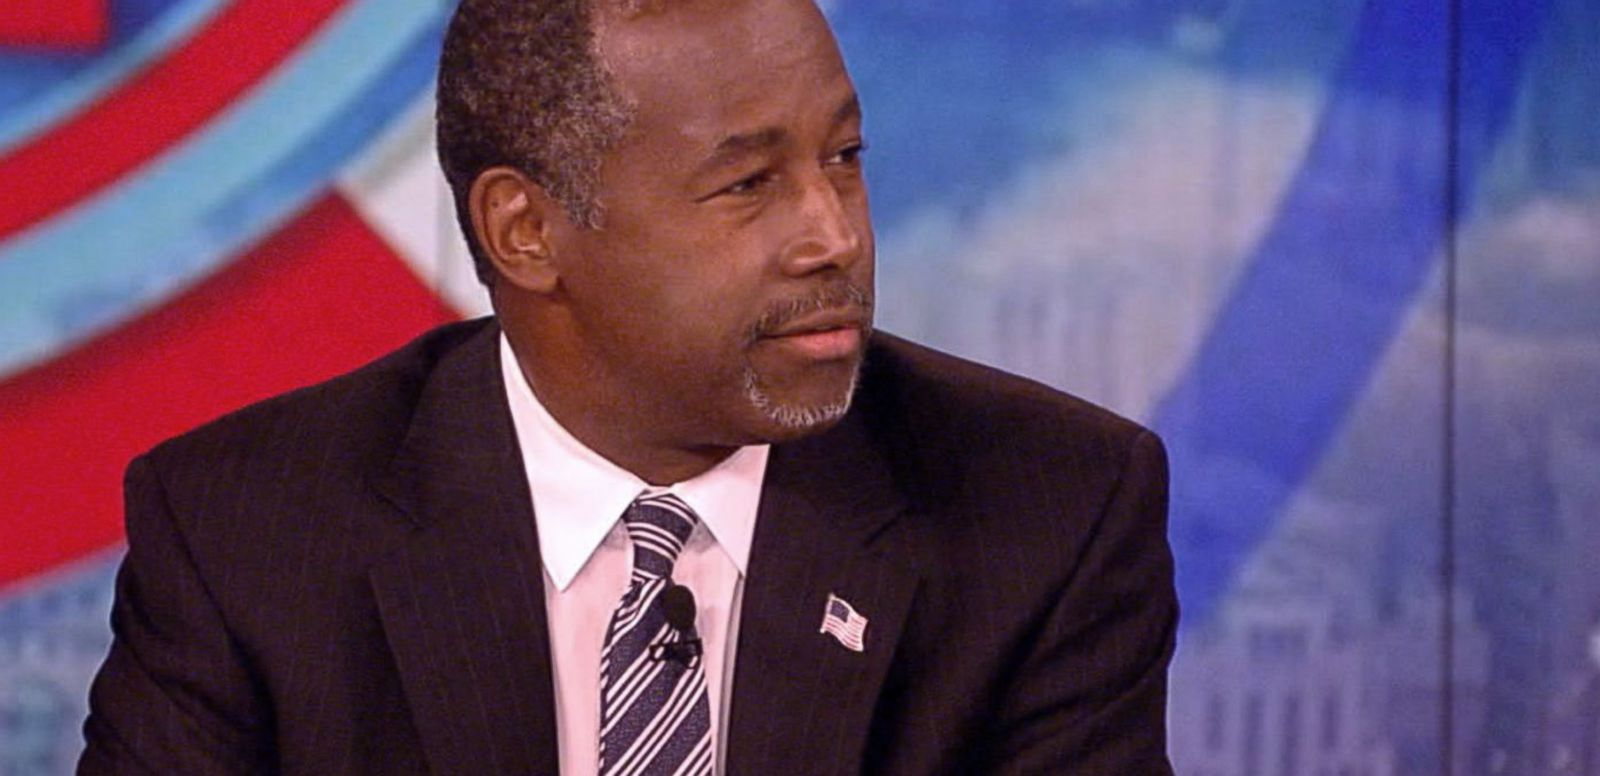 VIDEO: Ben Carson Sparks Controversy With Gun Control Comments